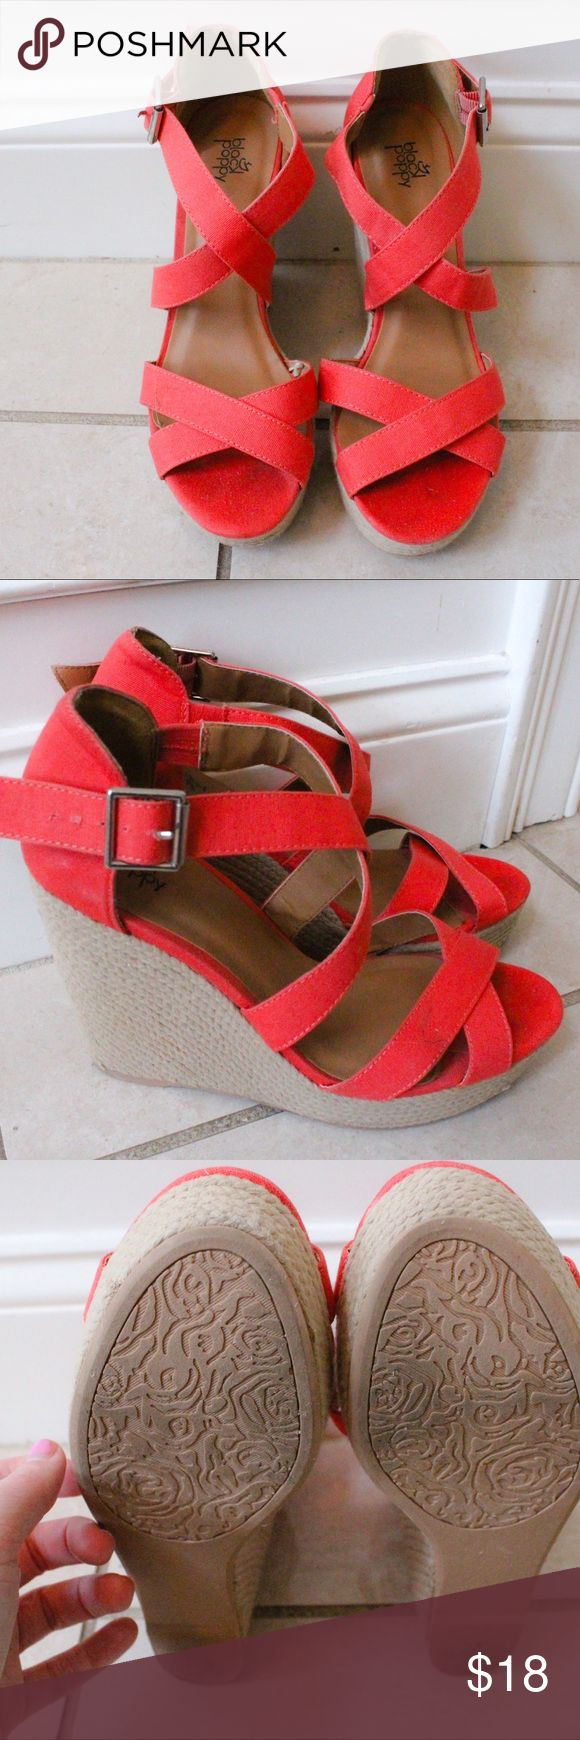 ⚡️FLASH SALE PacSun Statement Wedges LAST CHANCE DEAL 🛍🛒⏳  Clean and like-new Coral colored wedges from PacSun.  Very light scuff marks. Labeled as pink as its the closest I could get to this gorgeous Coral shade.  Only worn 1 time!!! They add awesome flair to any black going out outfit combo! ✨  -  All items cleaned before shipping. 🌻   -  Make me an offer & BUNDLE to save! 💸   -🔑 SALES TIP:  Add my mini skirt bundle & save 20%!  It'll complete the look, & also comes with a matching…